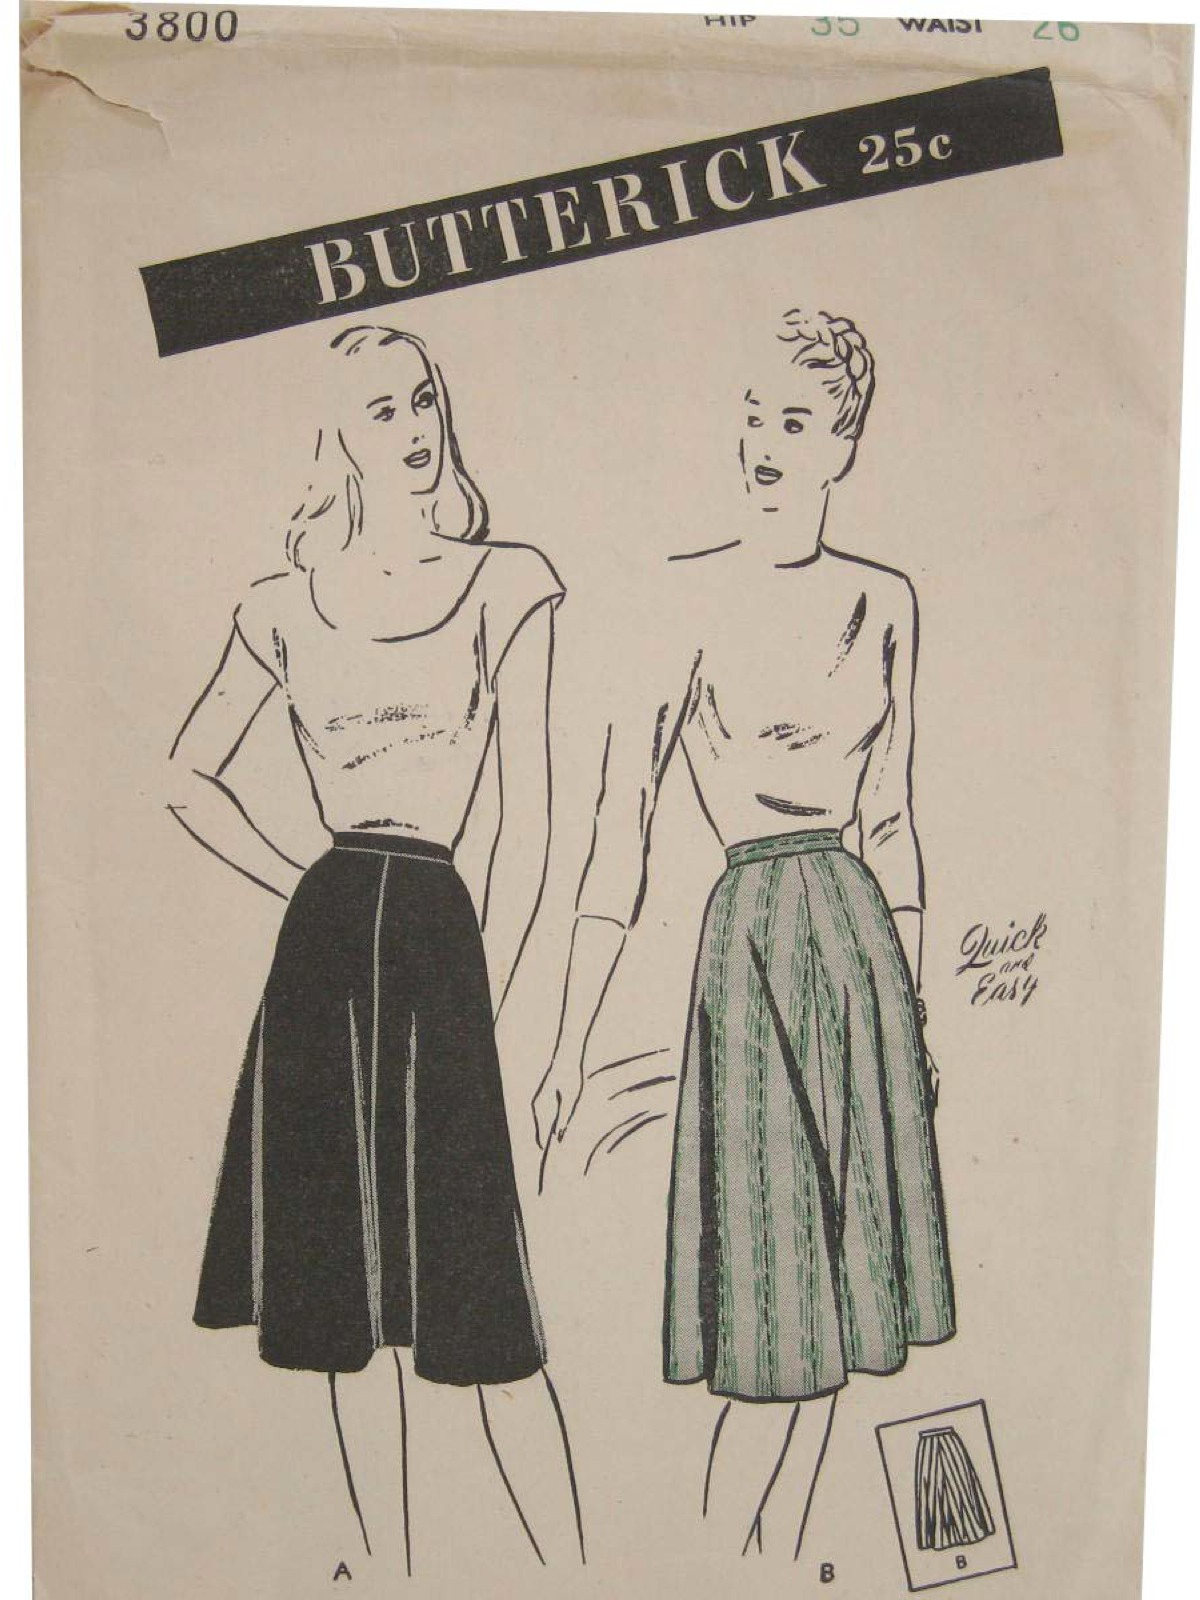 Vintage butterick pattern no3800 1930s sewing pattern 30s vintage butterick pattern no3800 1930s sewing pattern 30s butterick pattern no3800 womens graceful four gore circular cut skirt is quick and easy to jeuxipadfo Choice Image